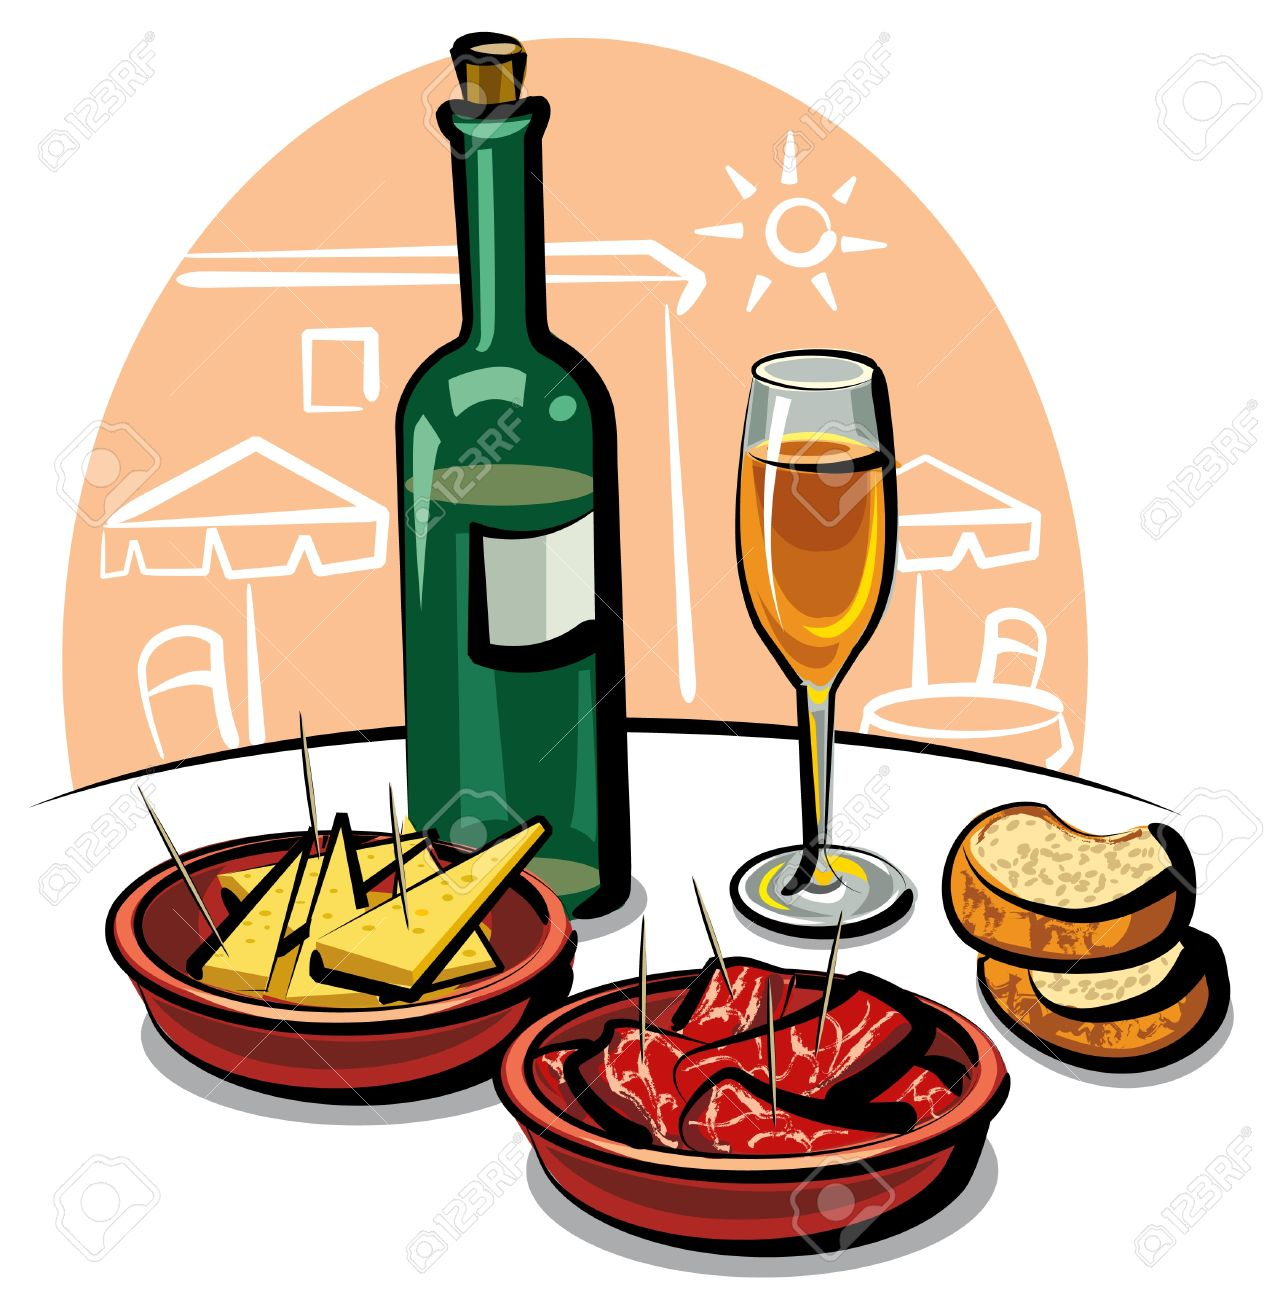 Spanish food images clipart.